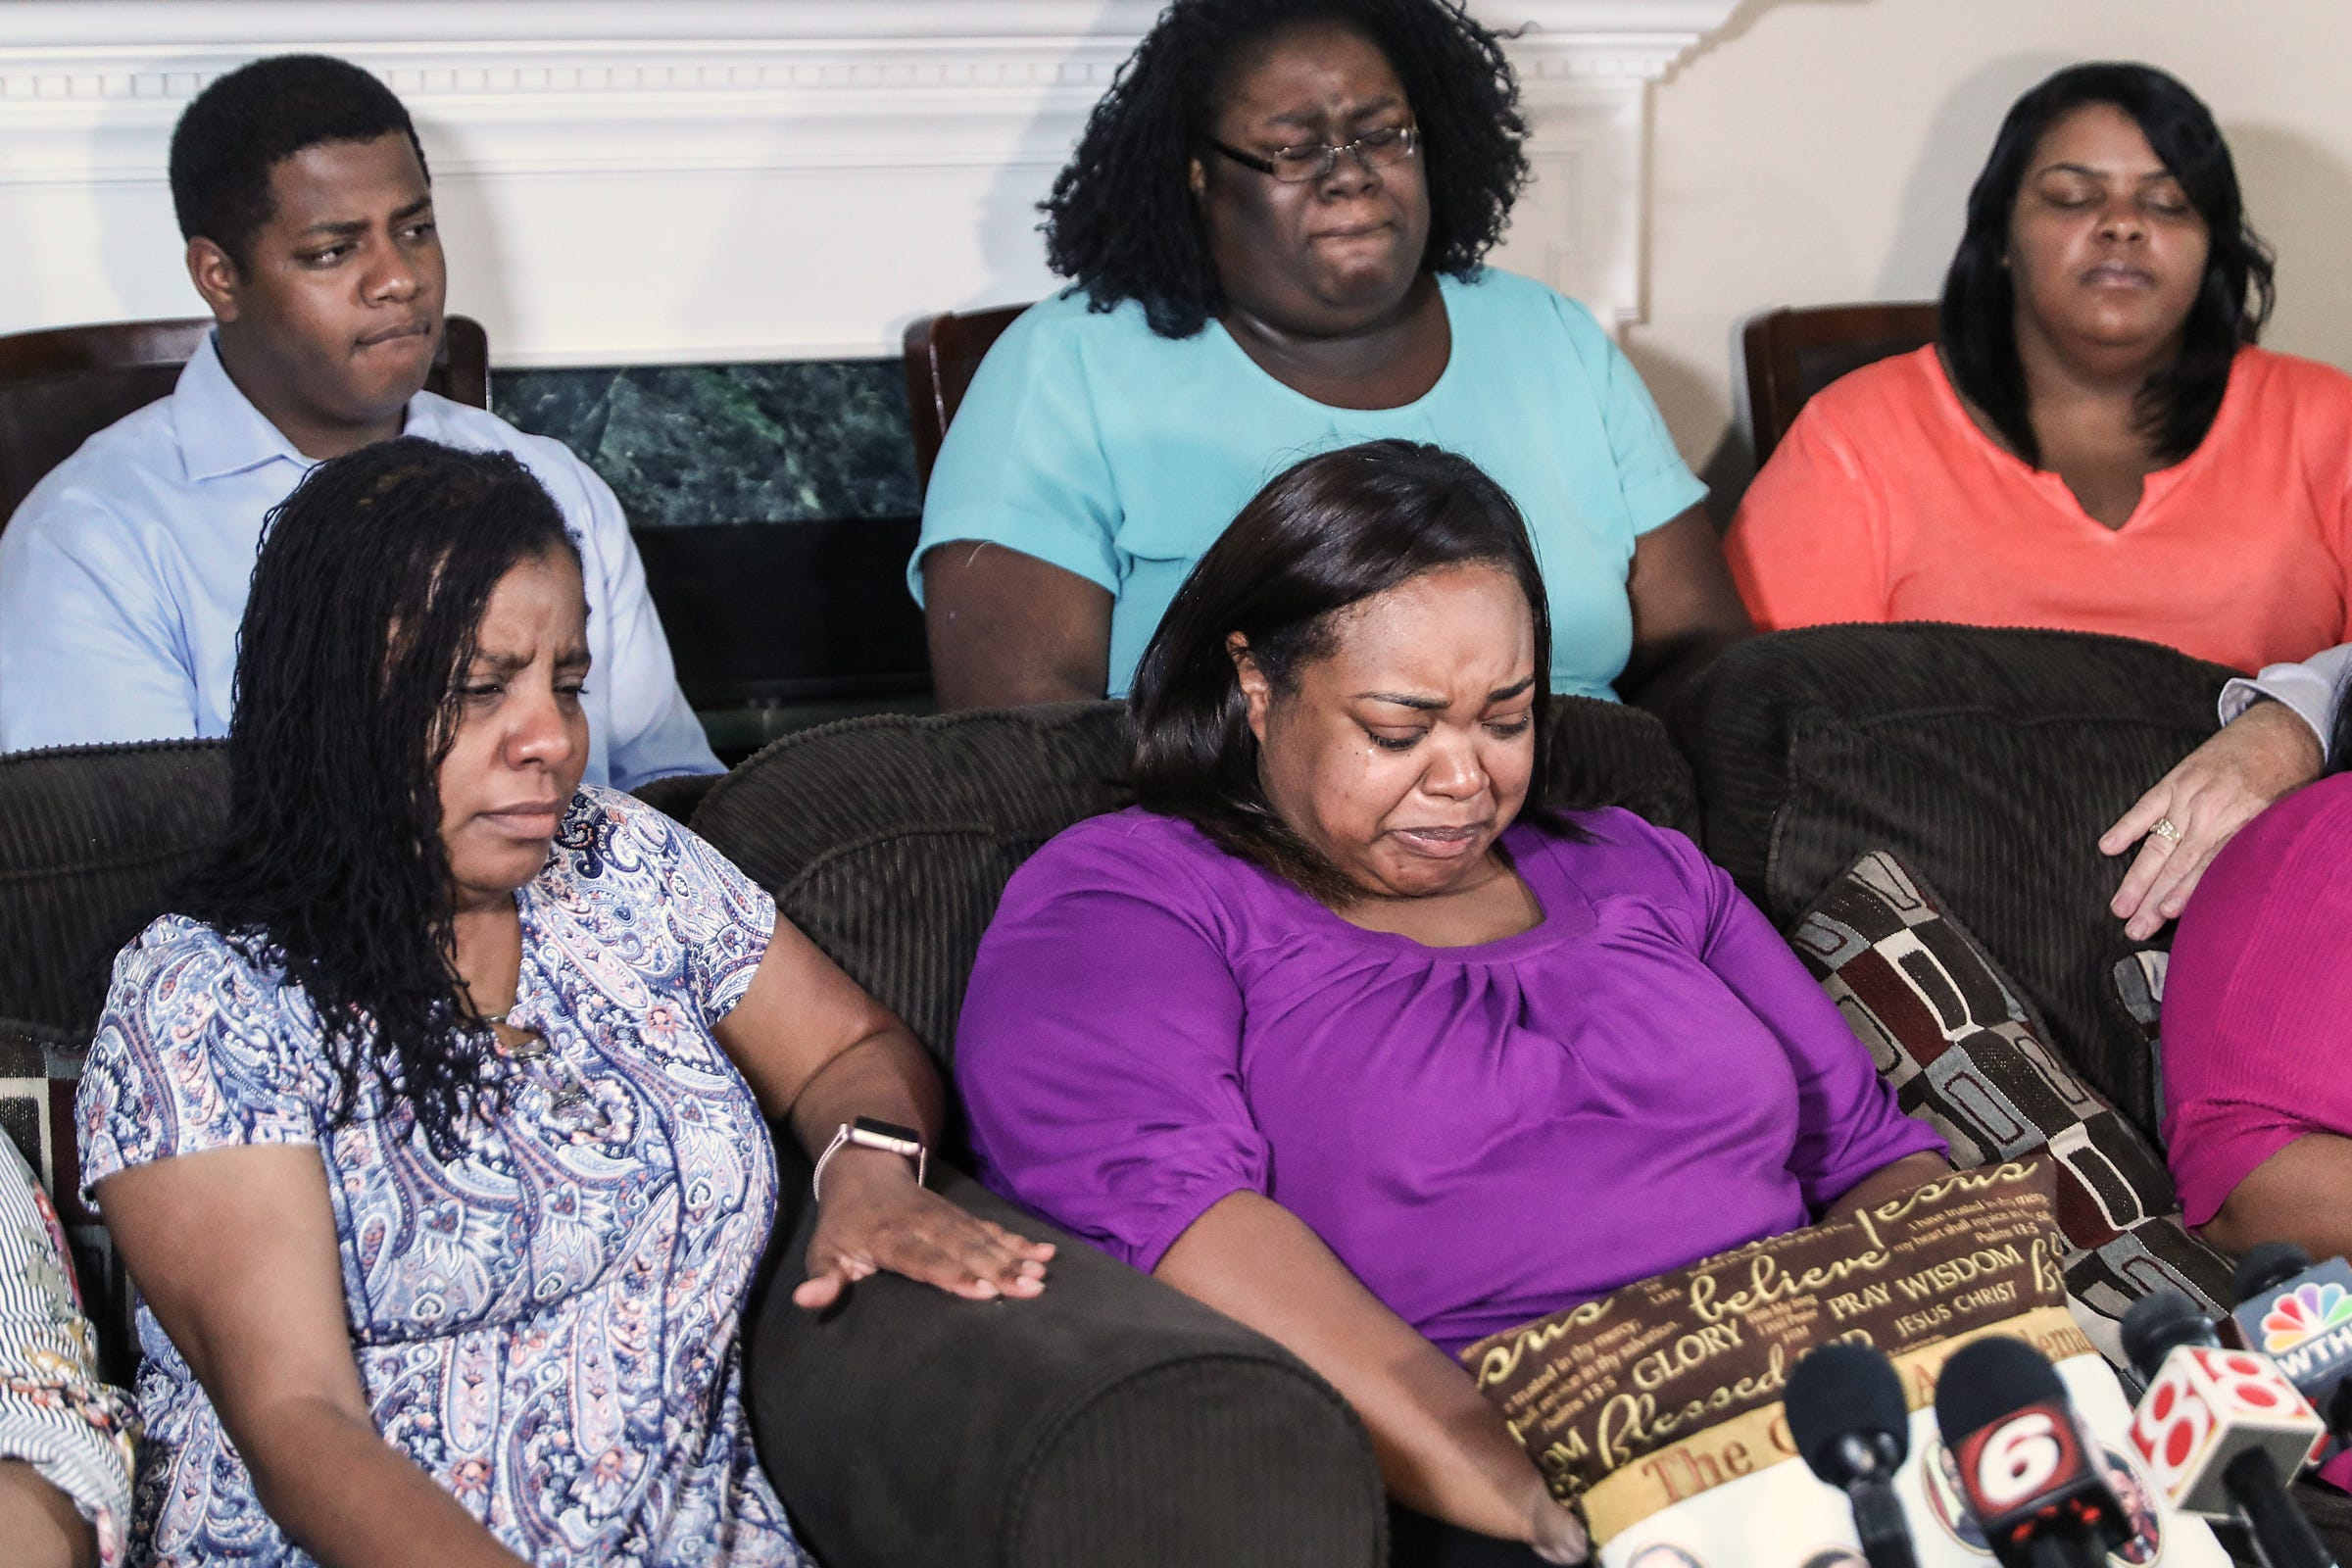 Duck boat survivor who lost her husband and 3 kids: 'My house is now haunted by silence'